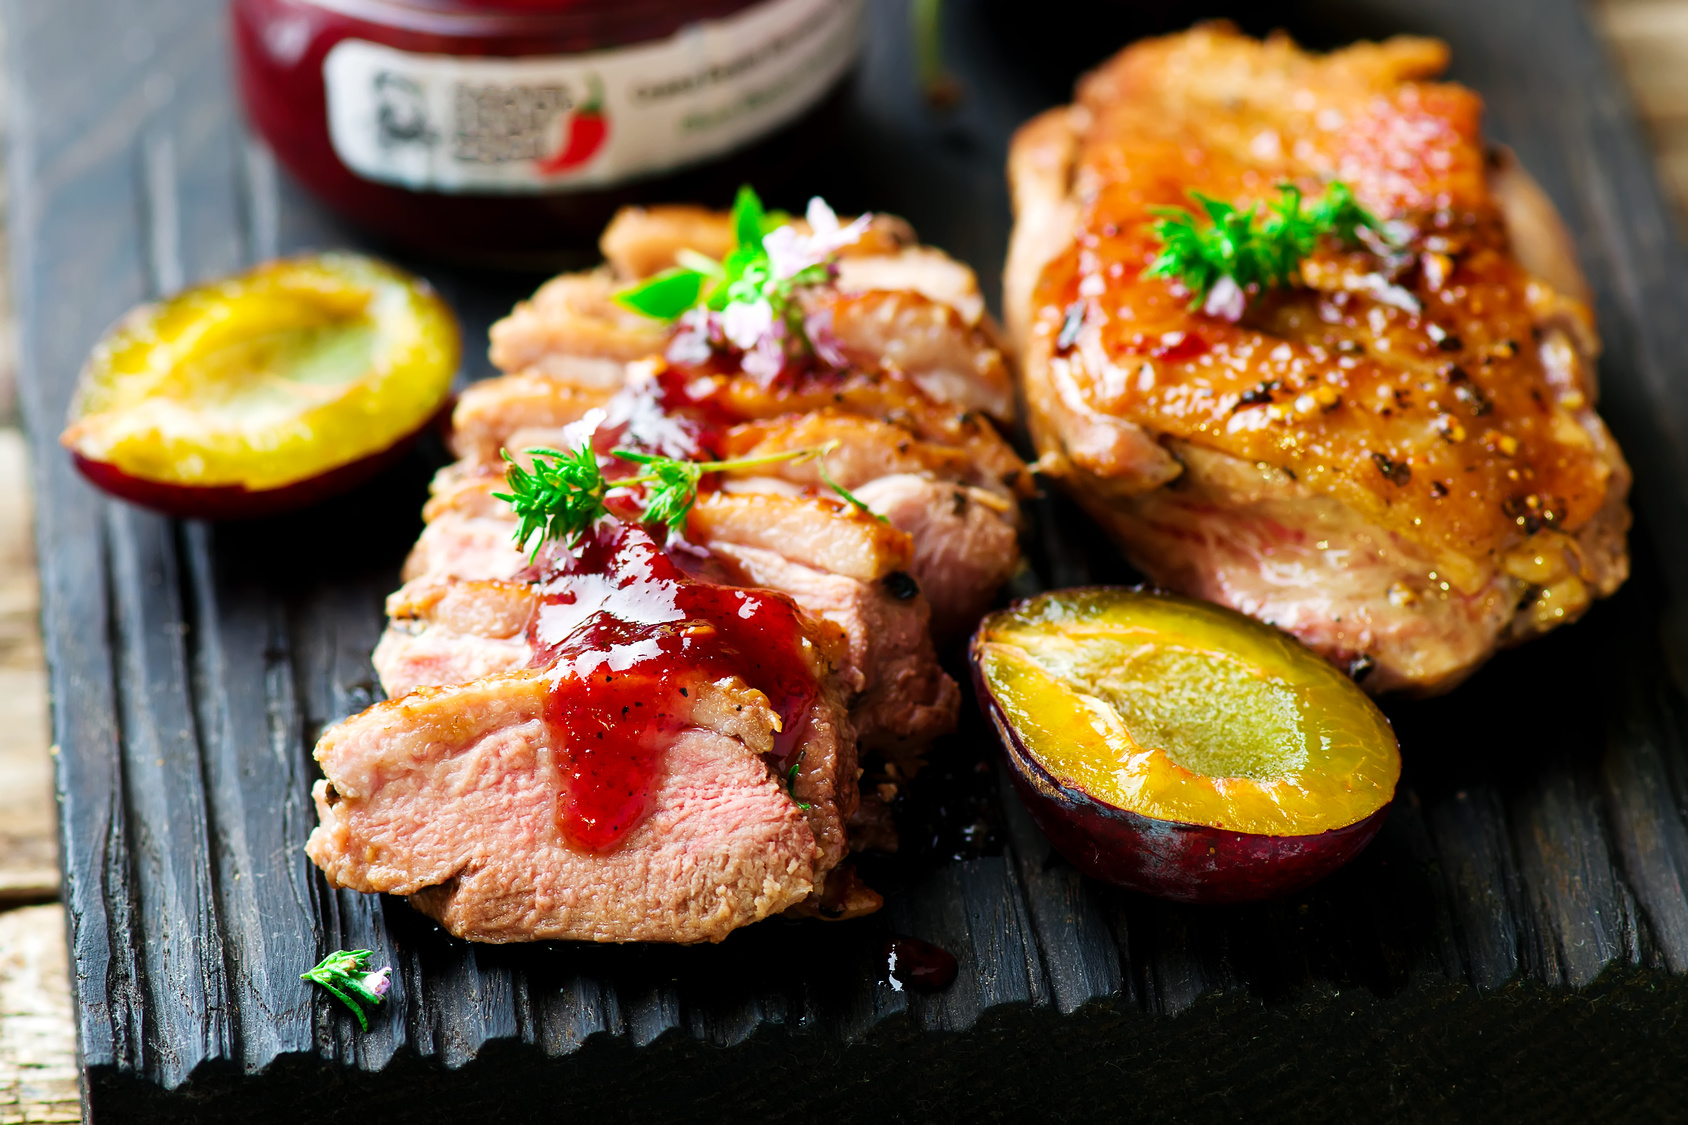 fried duck breast with plum sauce. selective focus